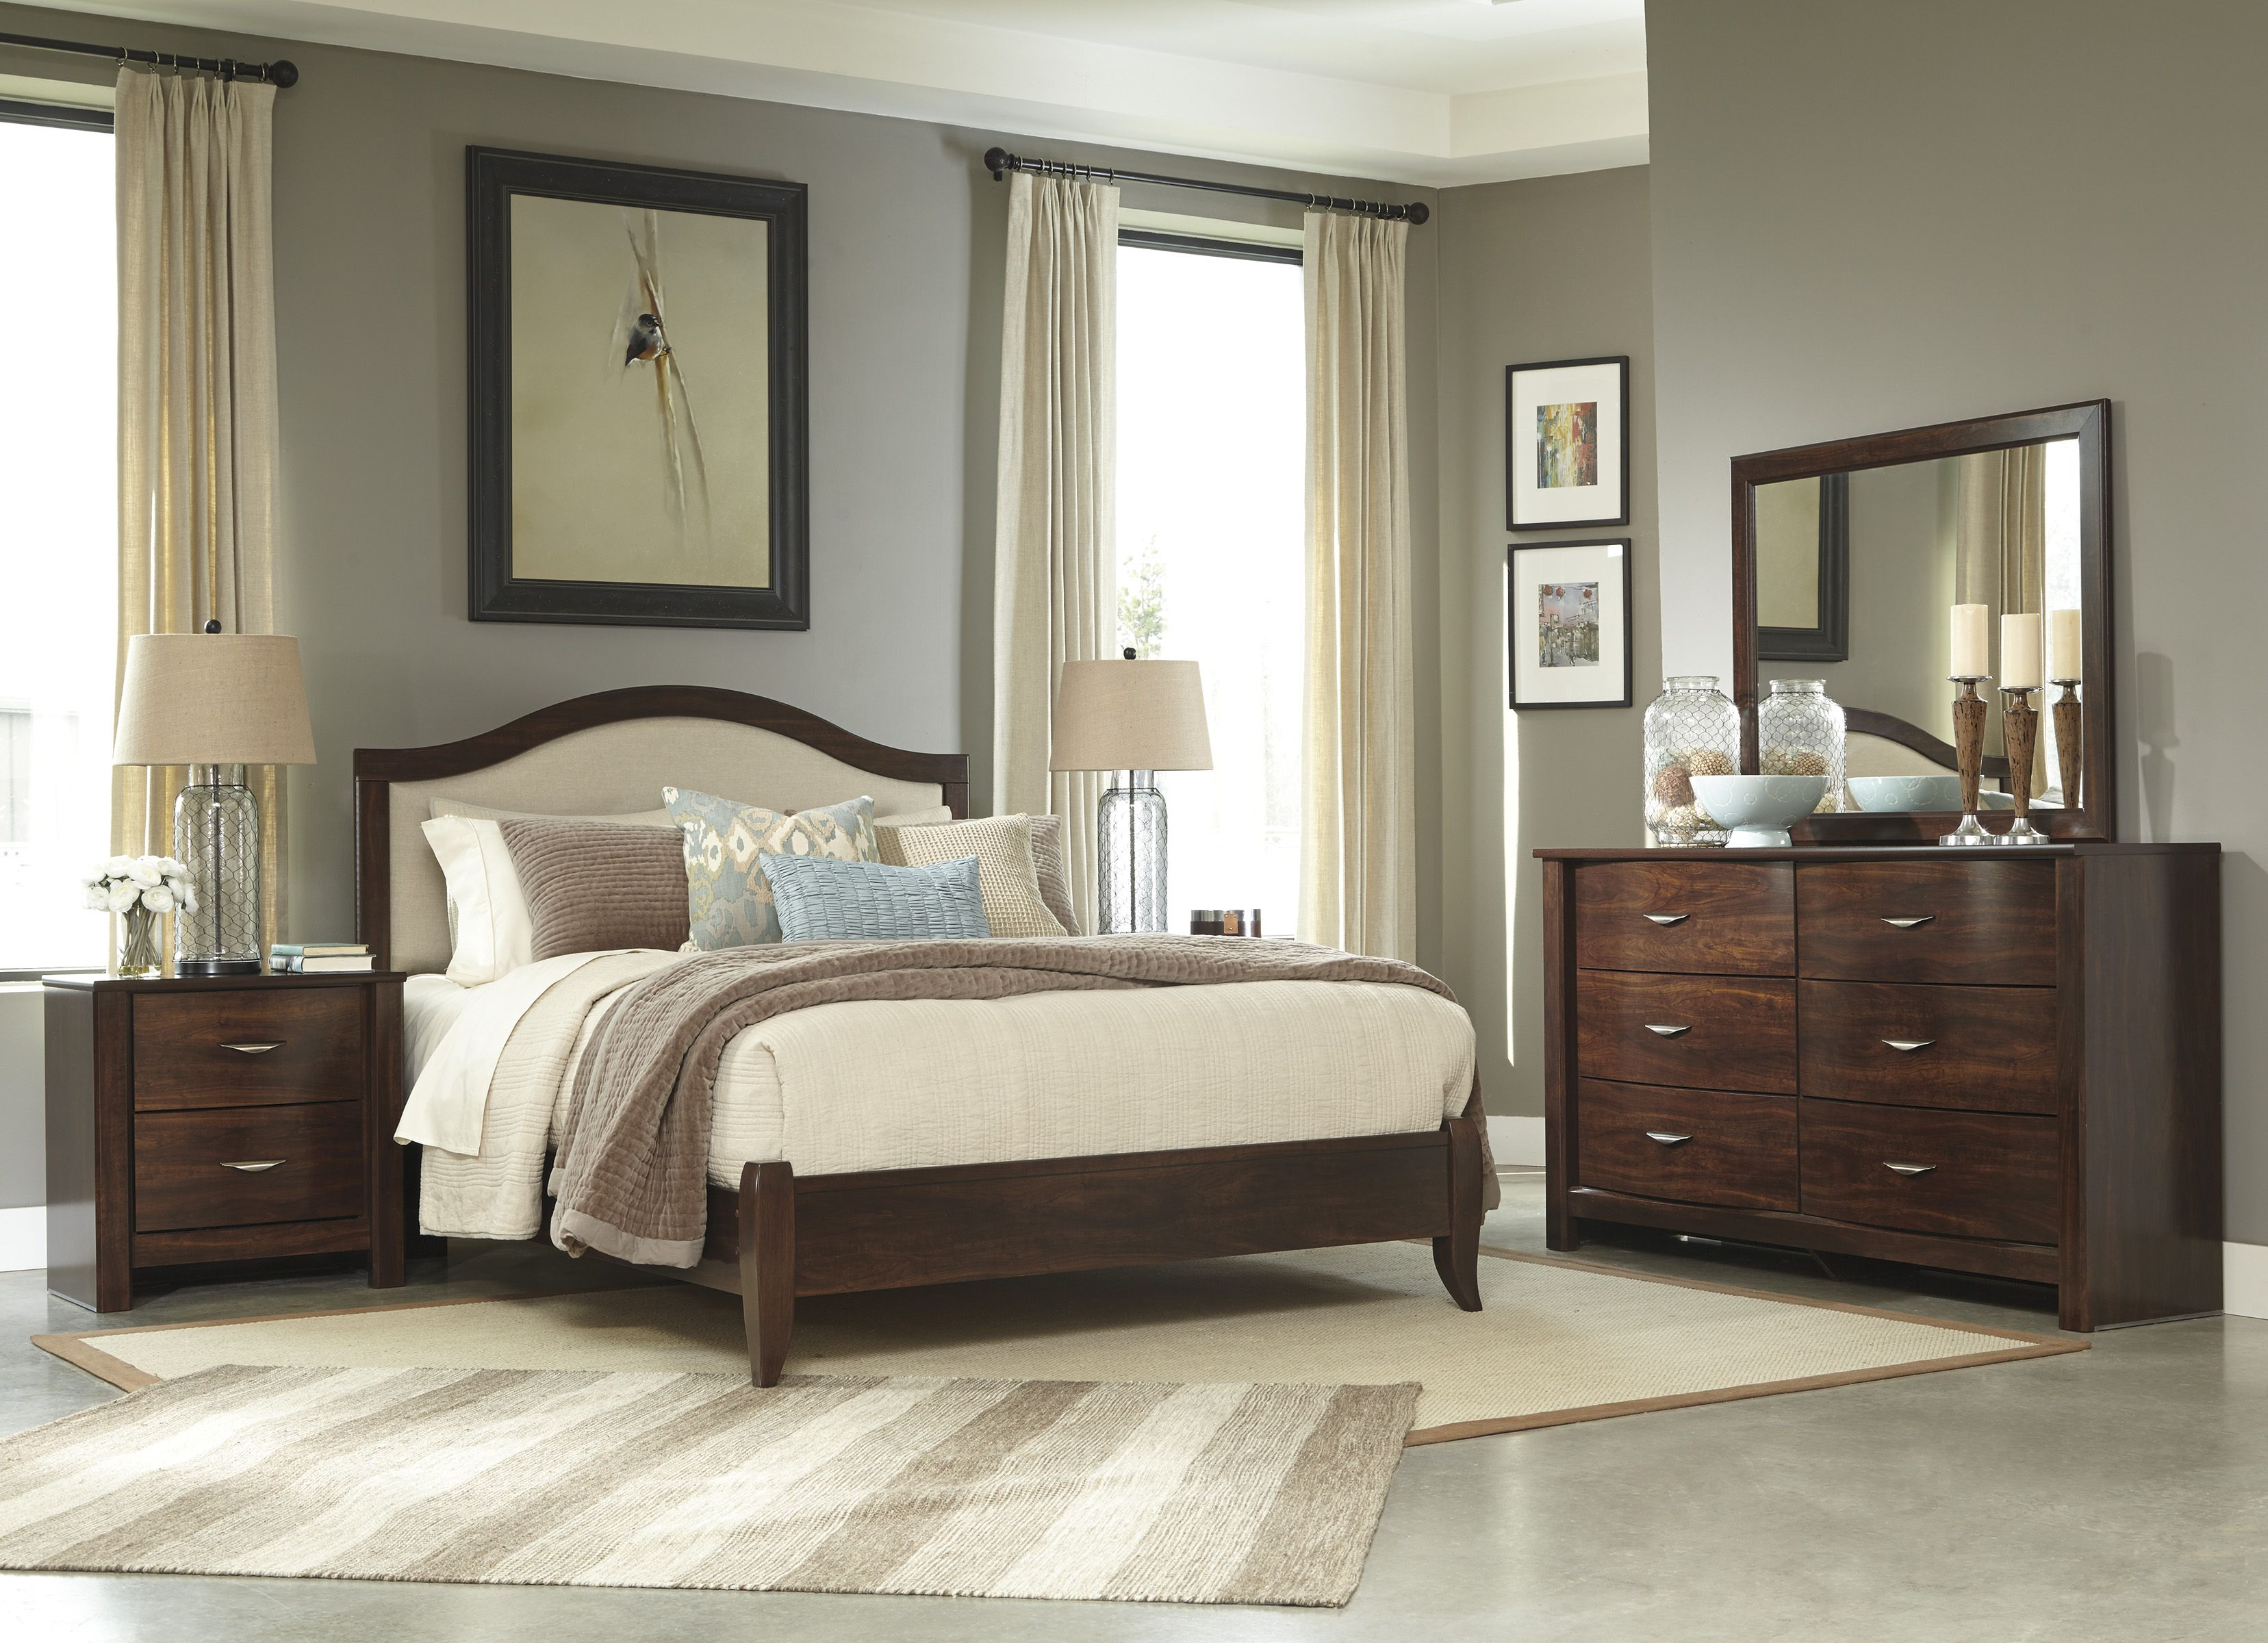 Bedrooms come in all styles, shapes, and sizes, so how do you ...